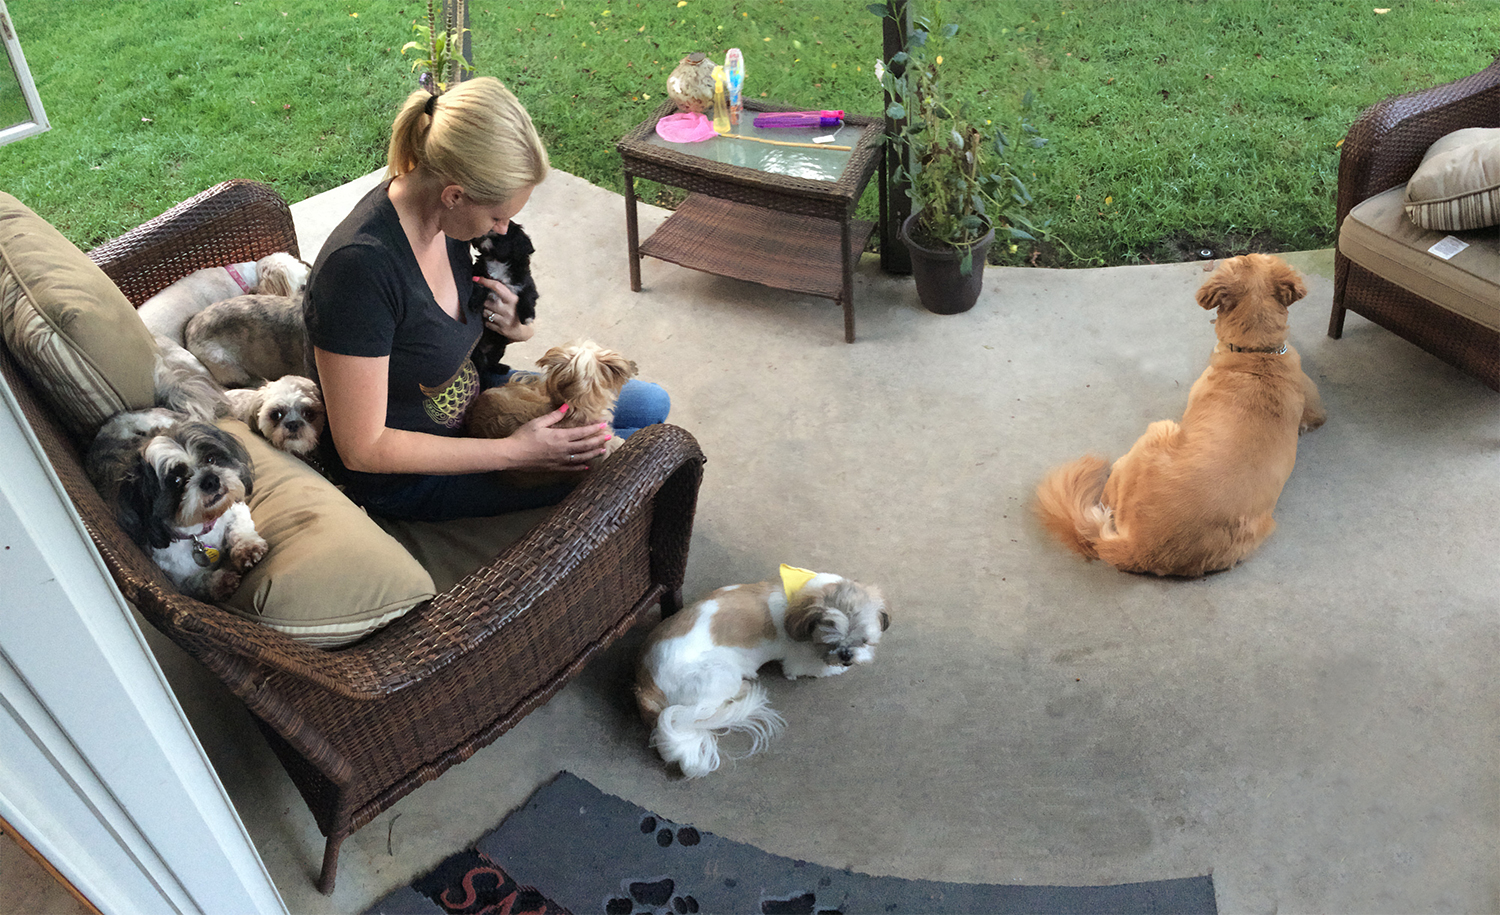 Kedda and Dogs relaxing on the patio at Bow Wow's Hangout.jpg